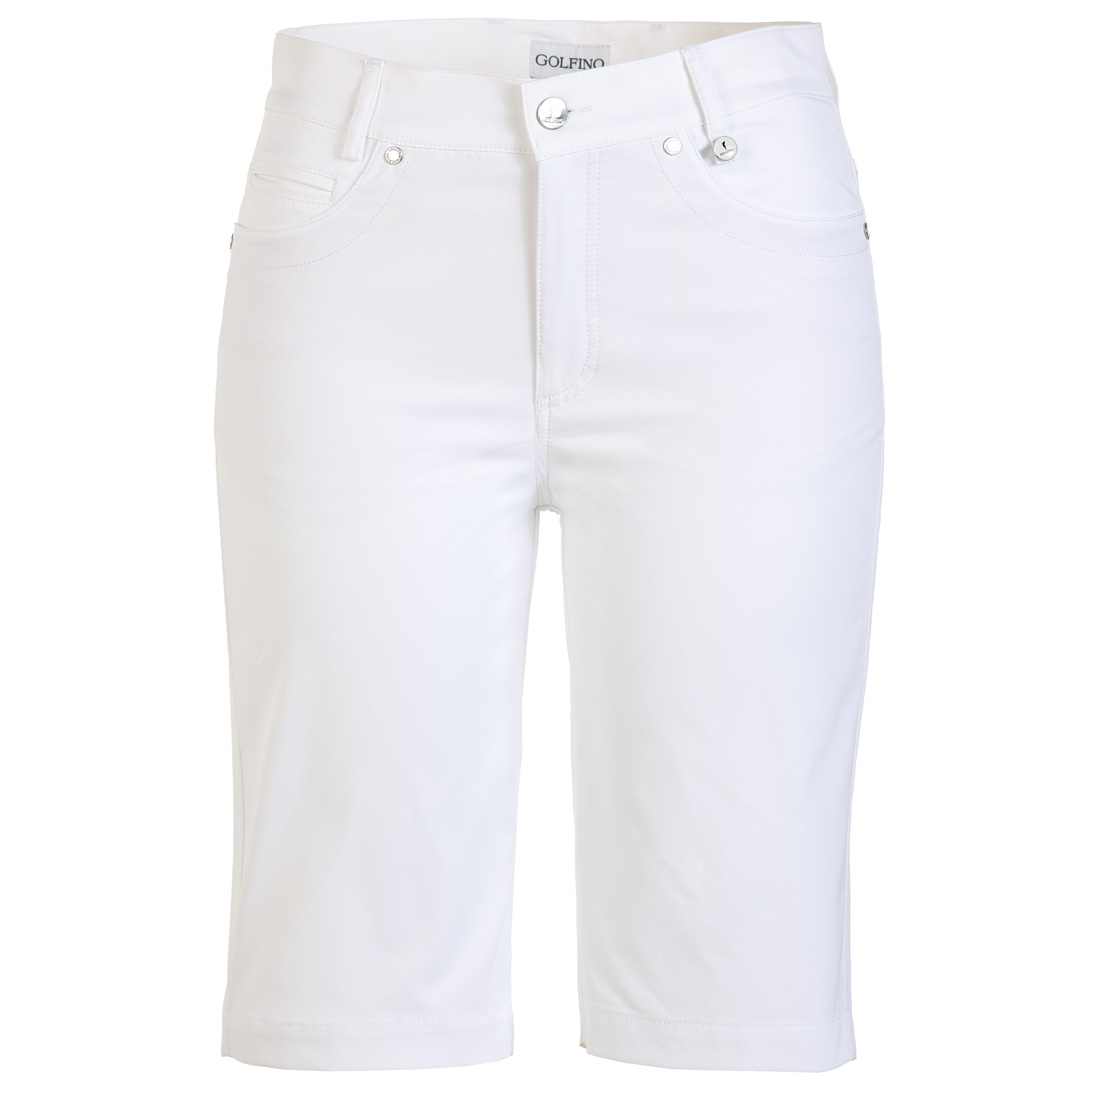 Ladies' golf Bermudas with UV protection and light techno stretch